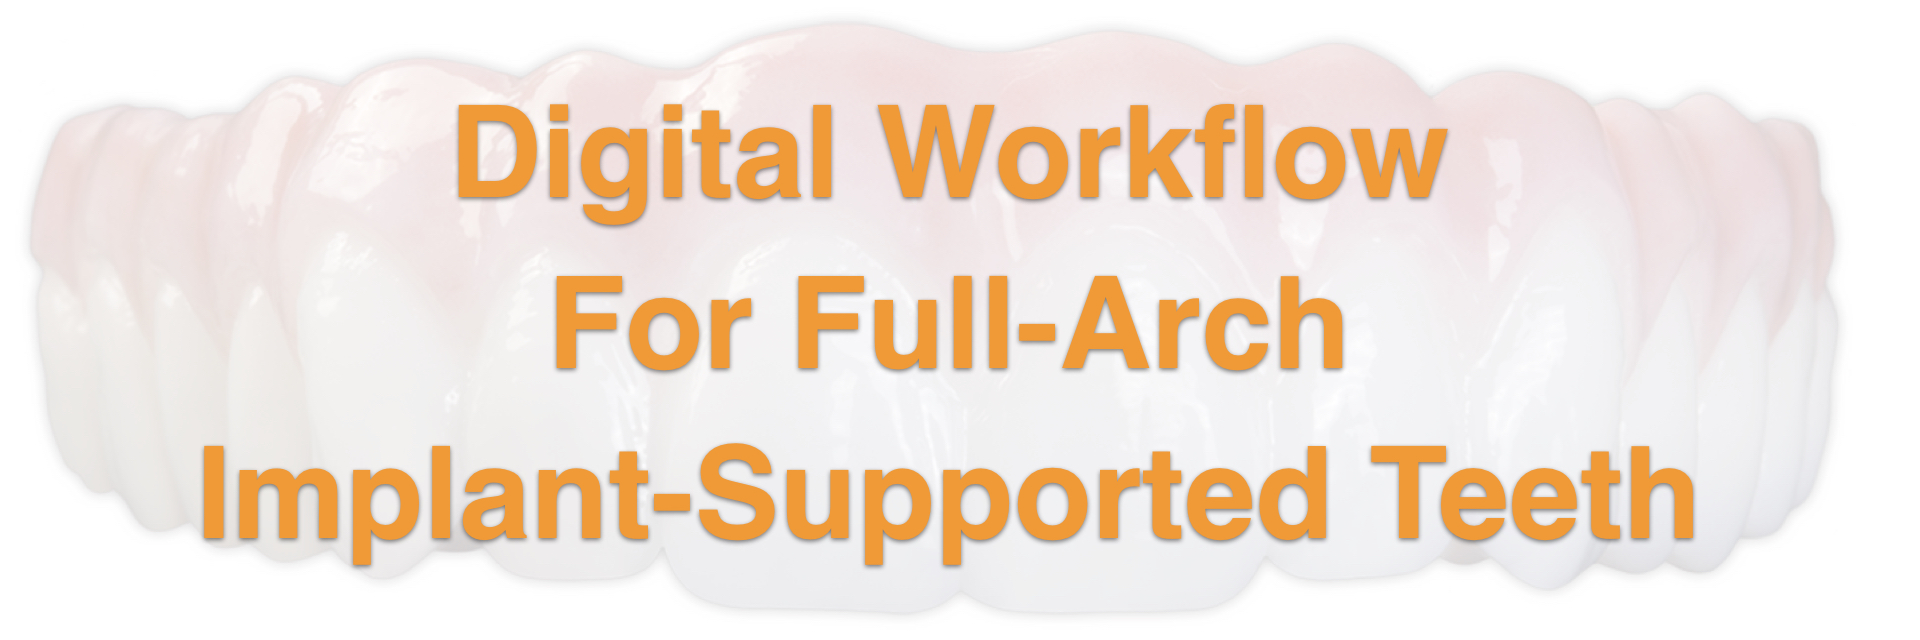 Digital-Workflow-for-Full-Arch-Implant-Supported-Teeth-Chrome-GuidedSmile-Kazemi-Oral-Surgery-Bethesda-Implant-Dentist.001